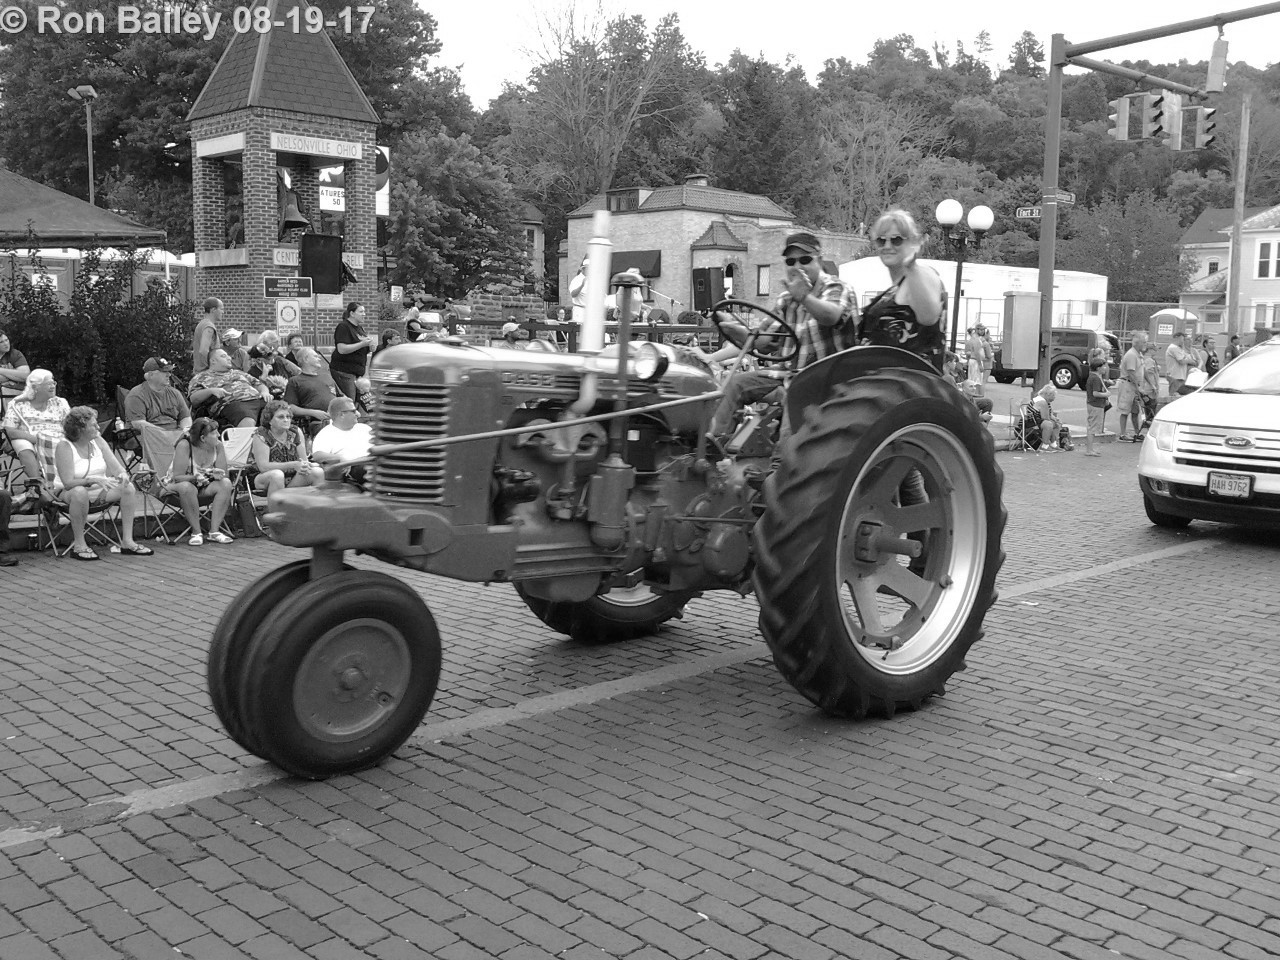 Parade of the Hills 2017 - Grand Parade BW 8-19-2017 7-15-36 PM